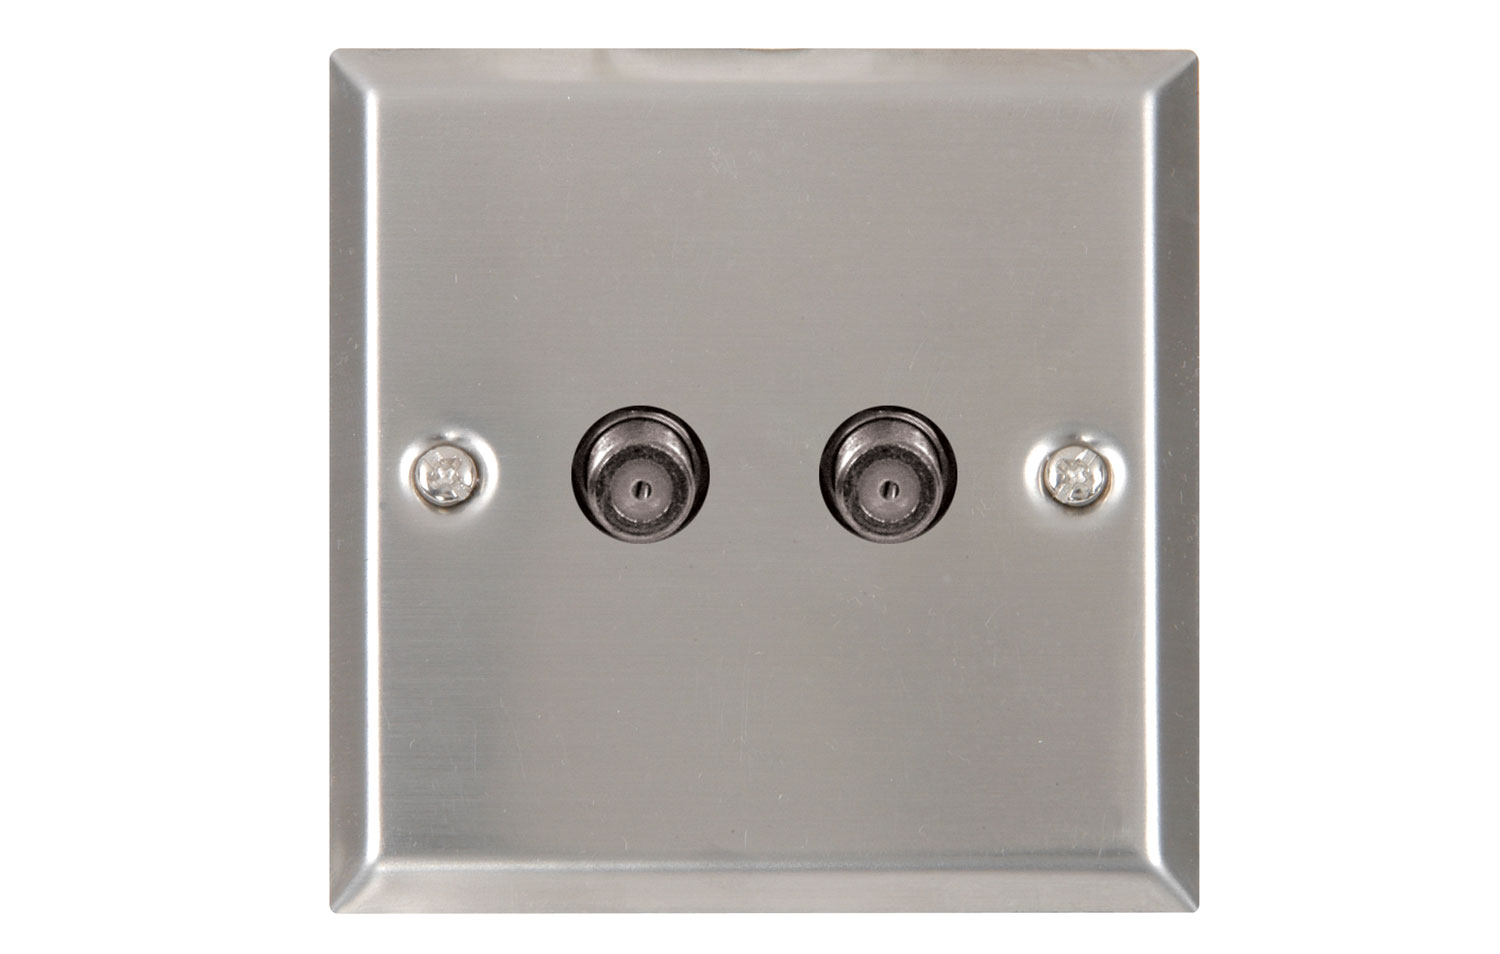 2 x Satellite wallplate steel